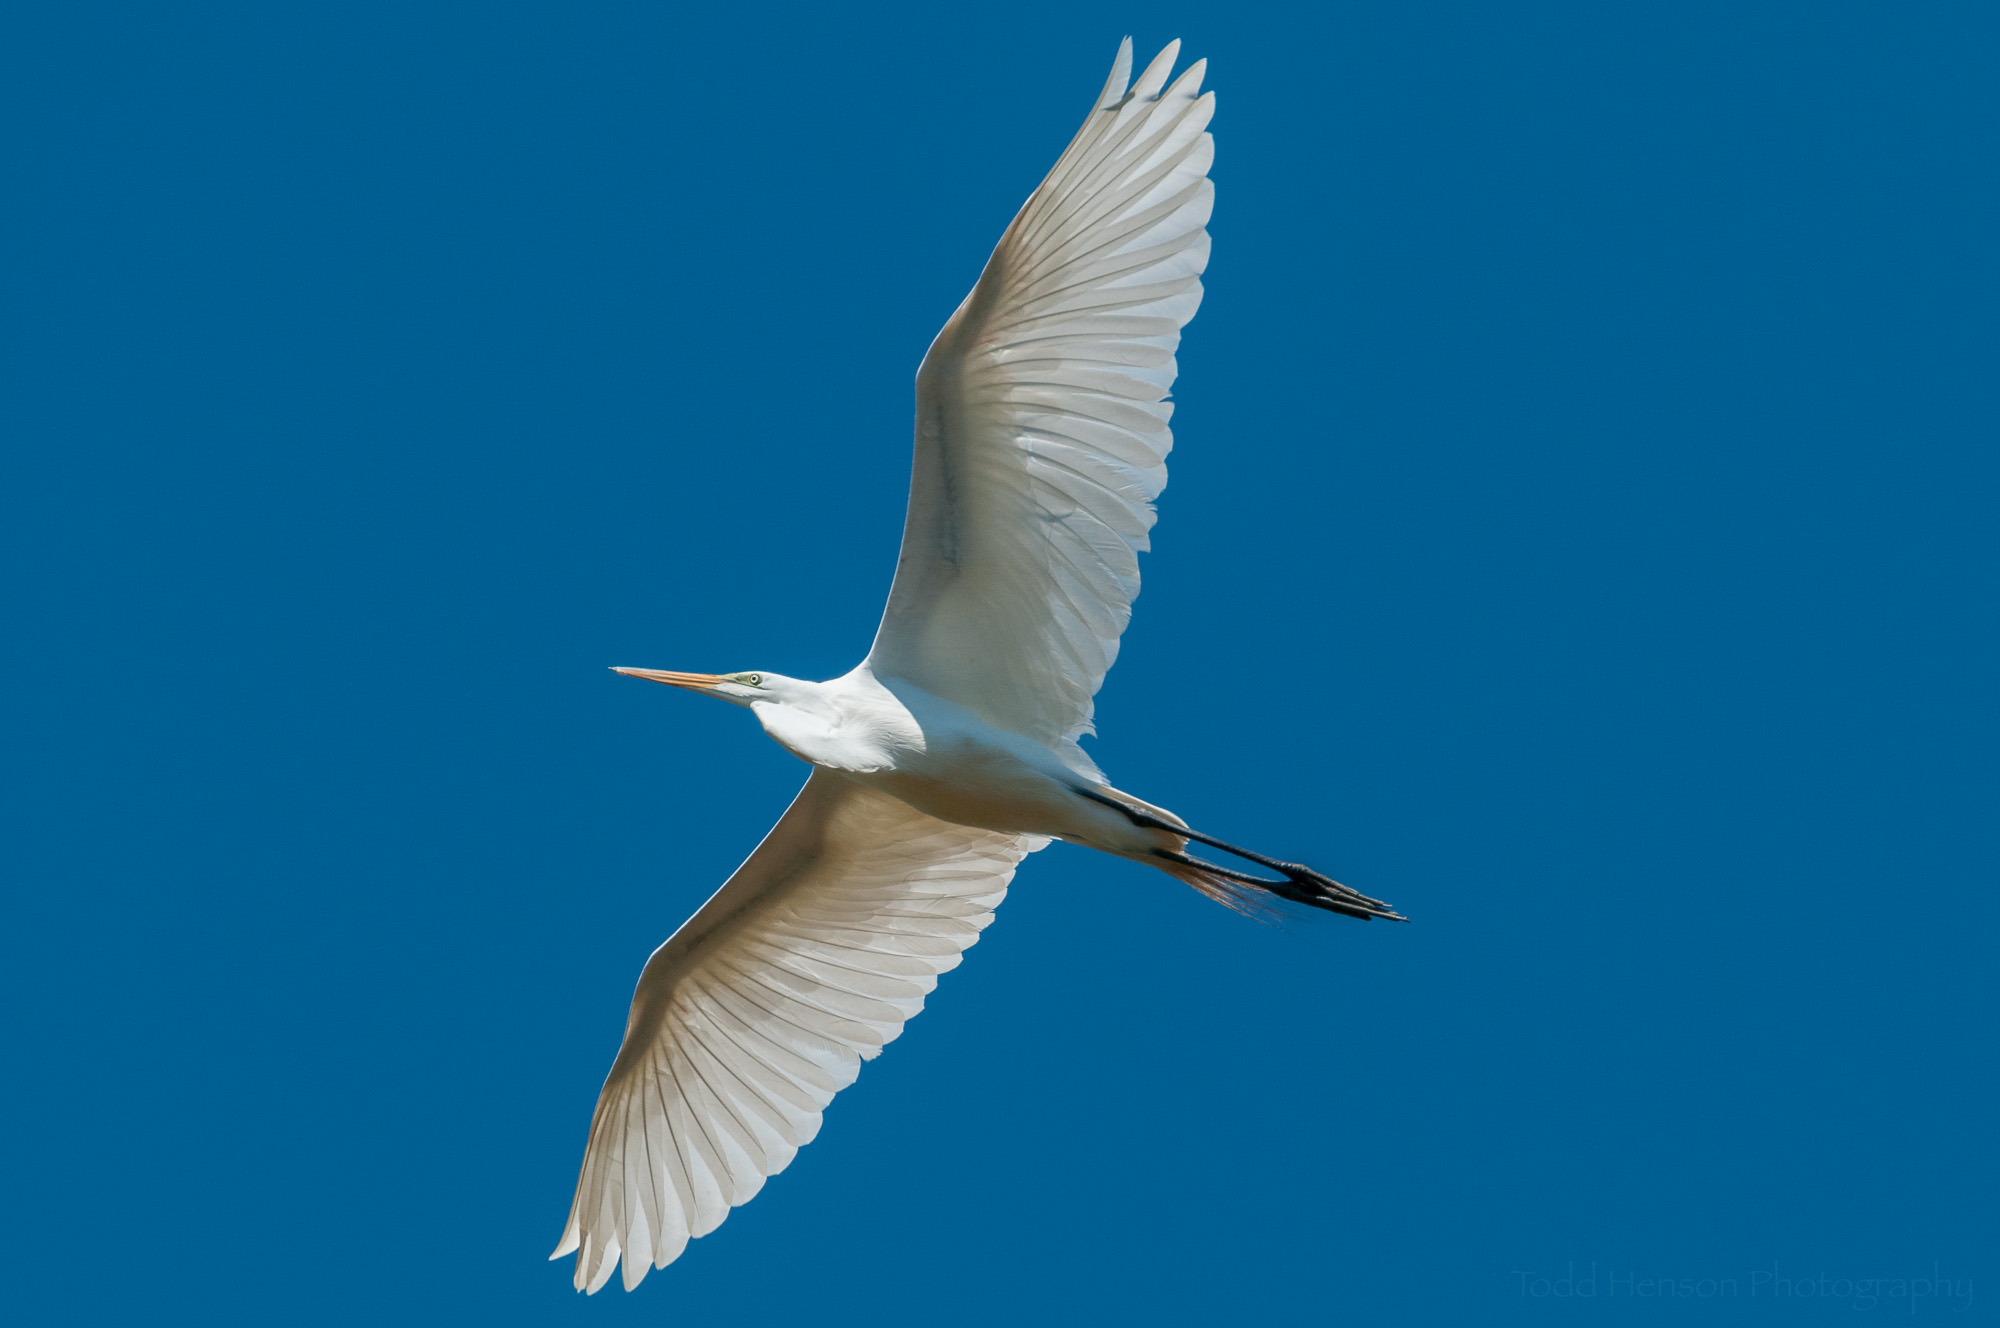 Great Egret in flight, overhead, against clear blue sky